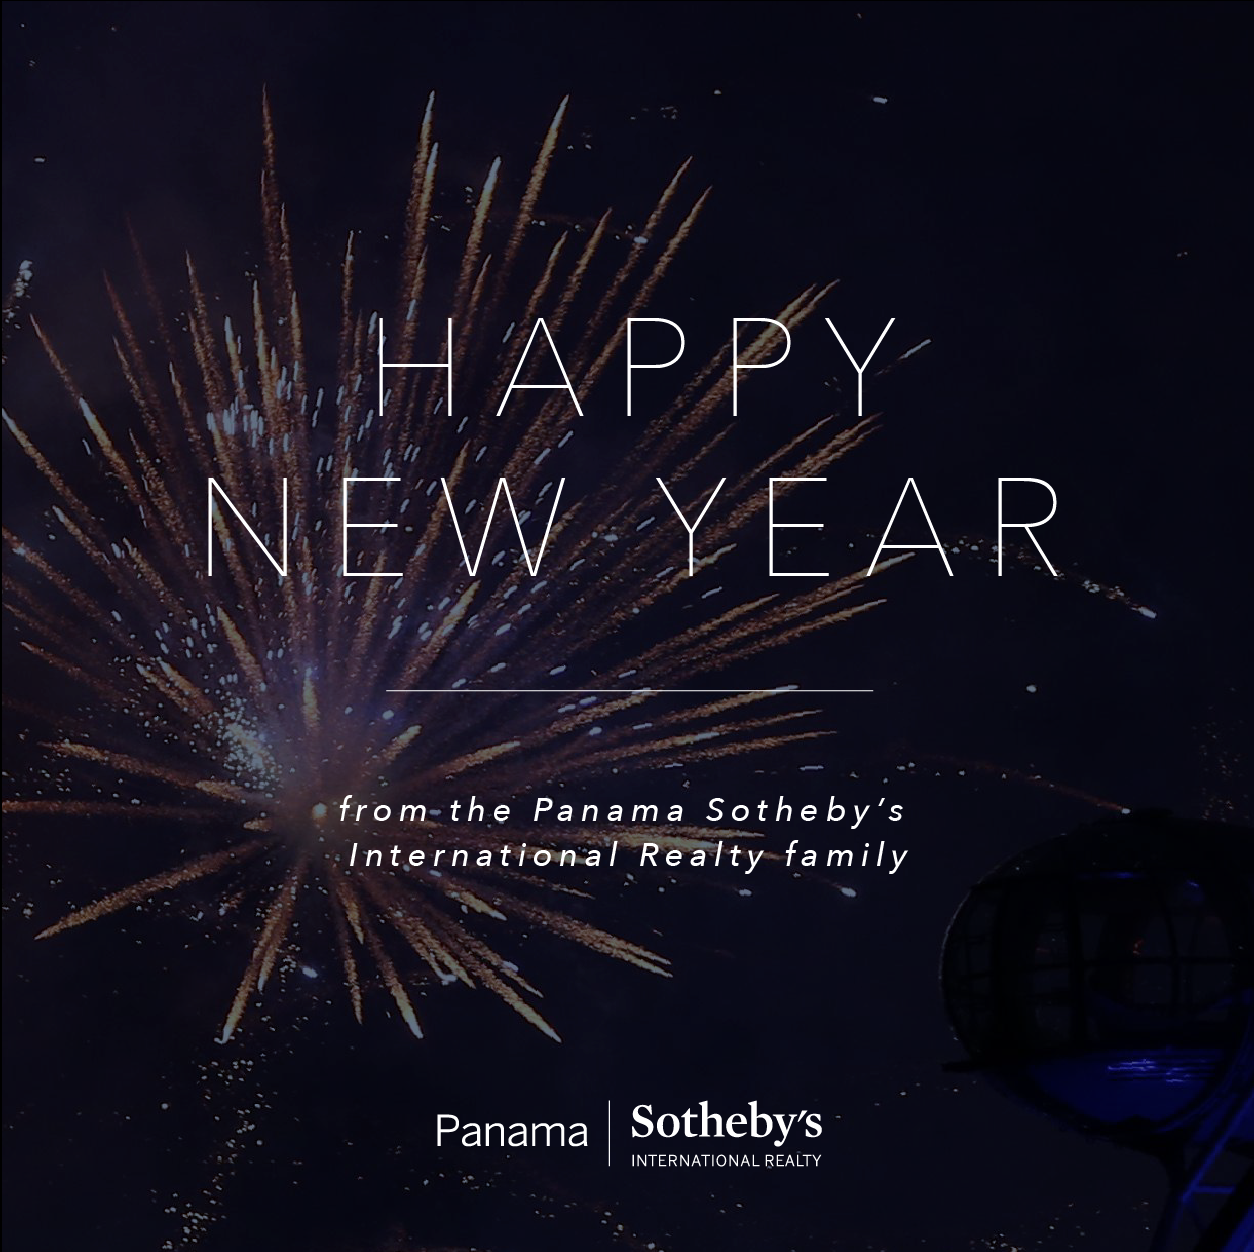 Panama Sotheby's International Realty Social Media Branding